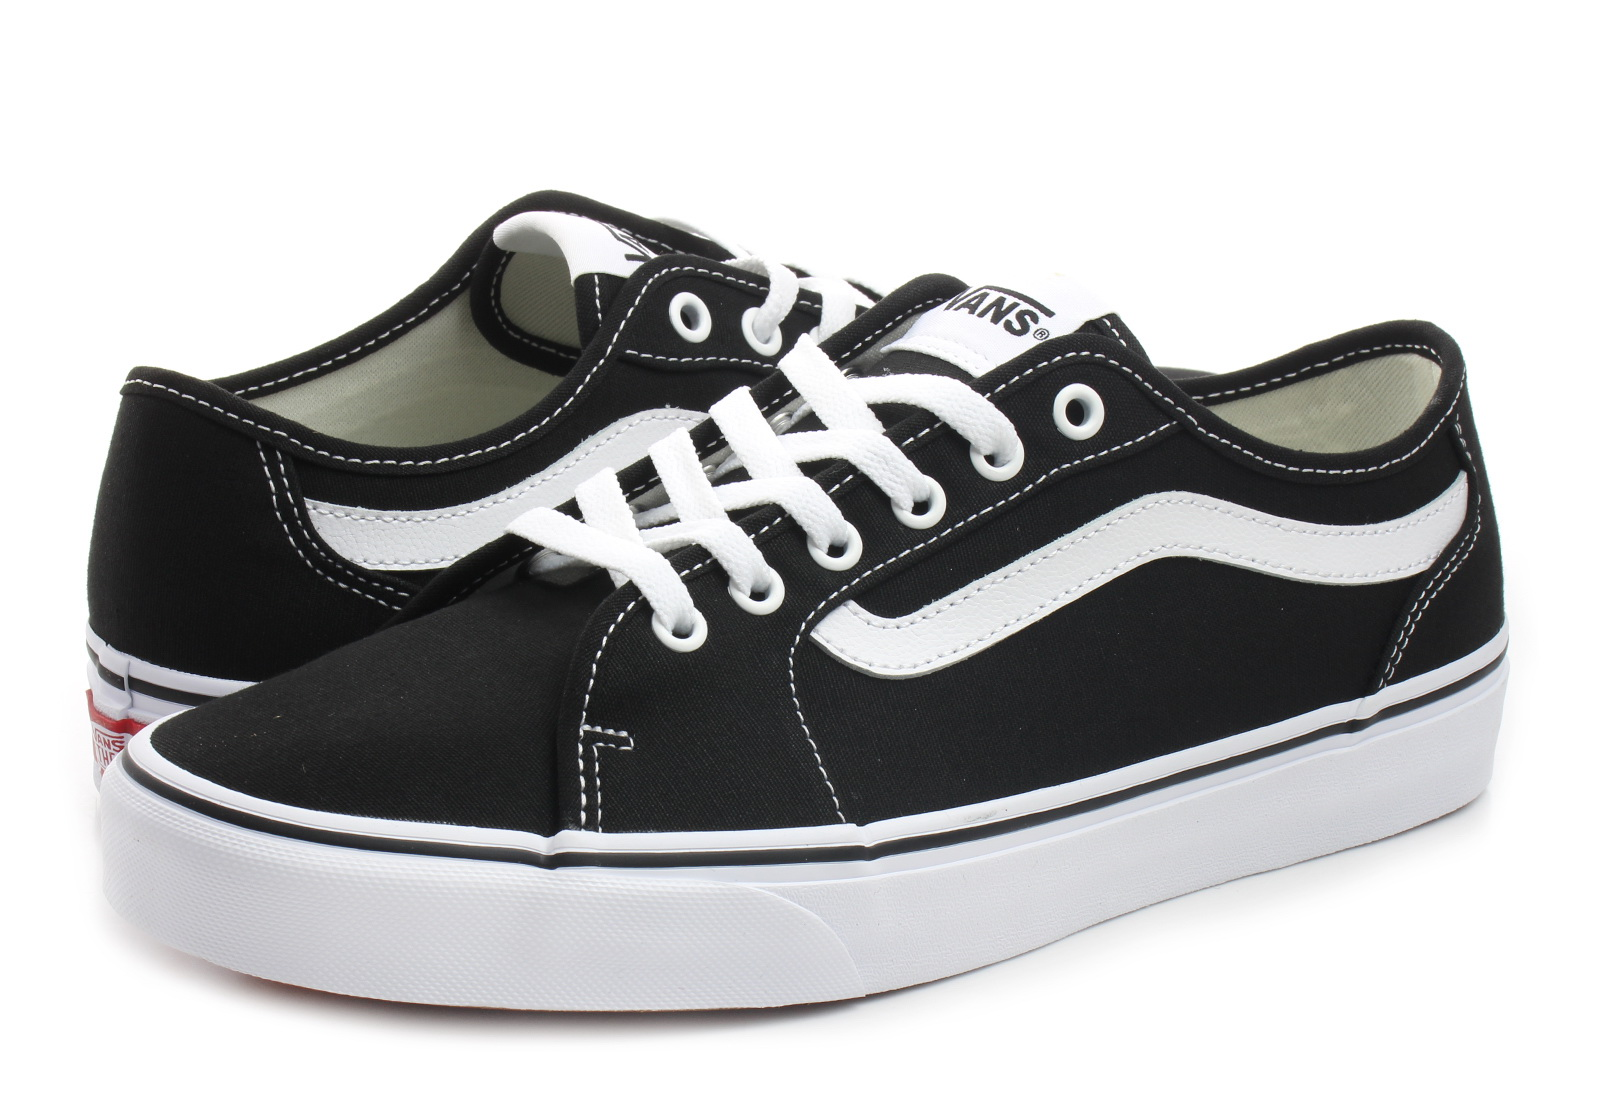 Vans Shoes Mn Filmore Decon VA3WKZ187 Online shop for sneakers, shoes and boots